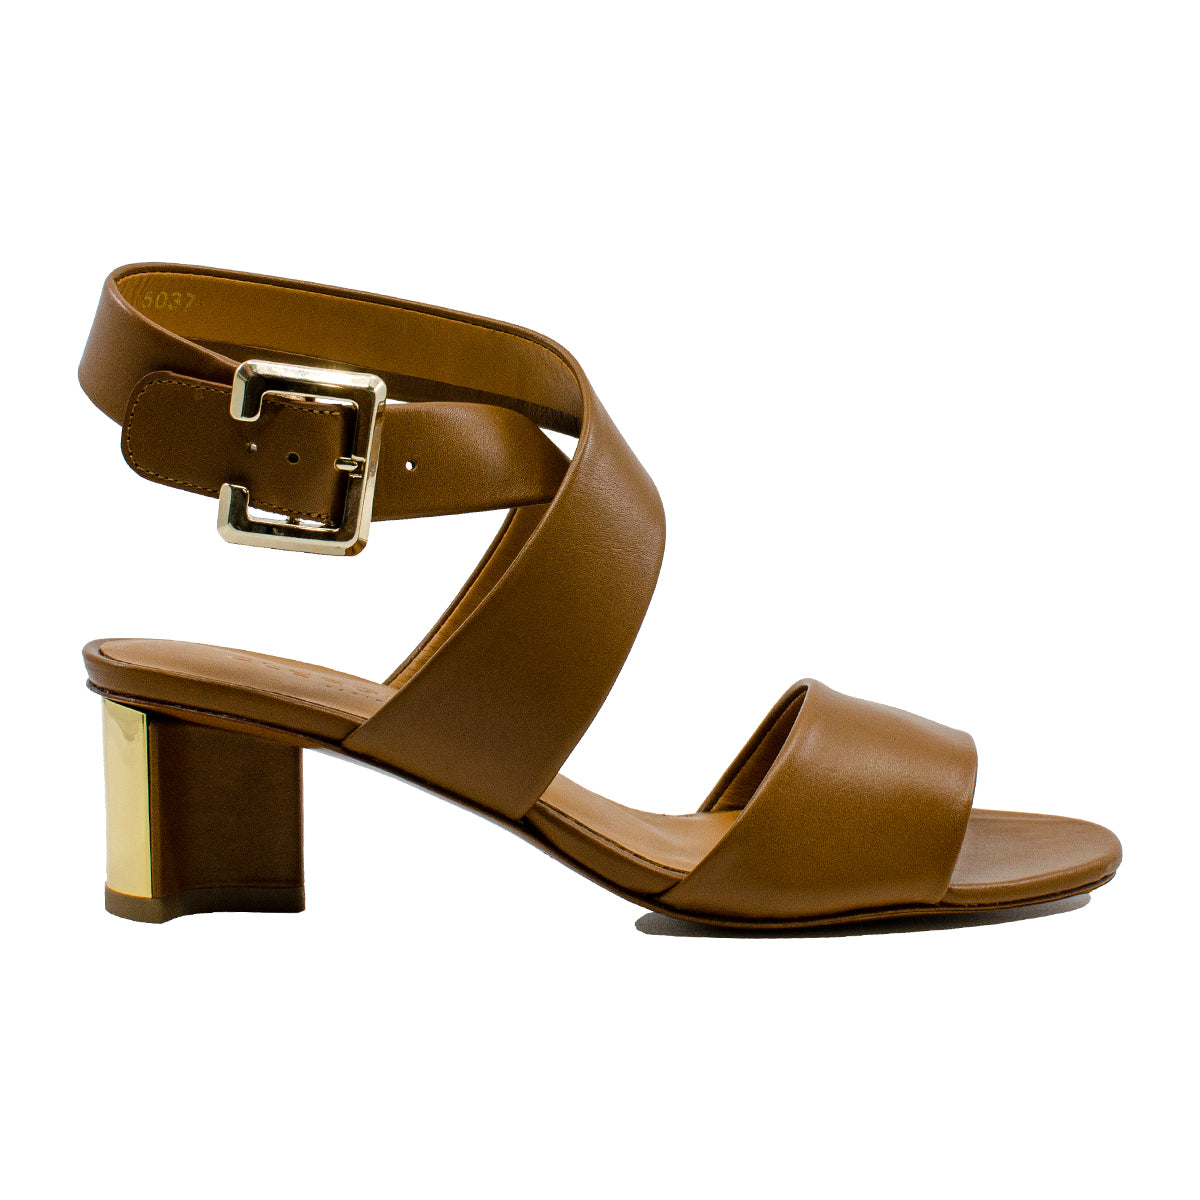 Agrume Mid Heel Strappy Sandals